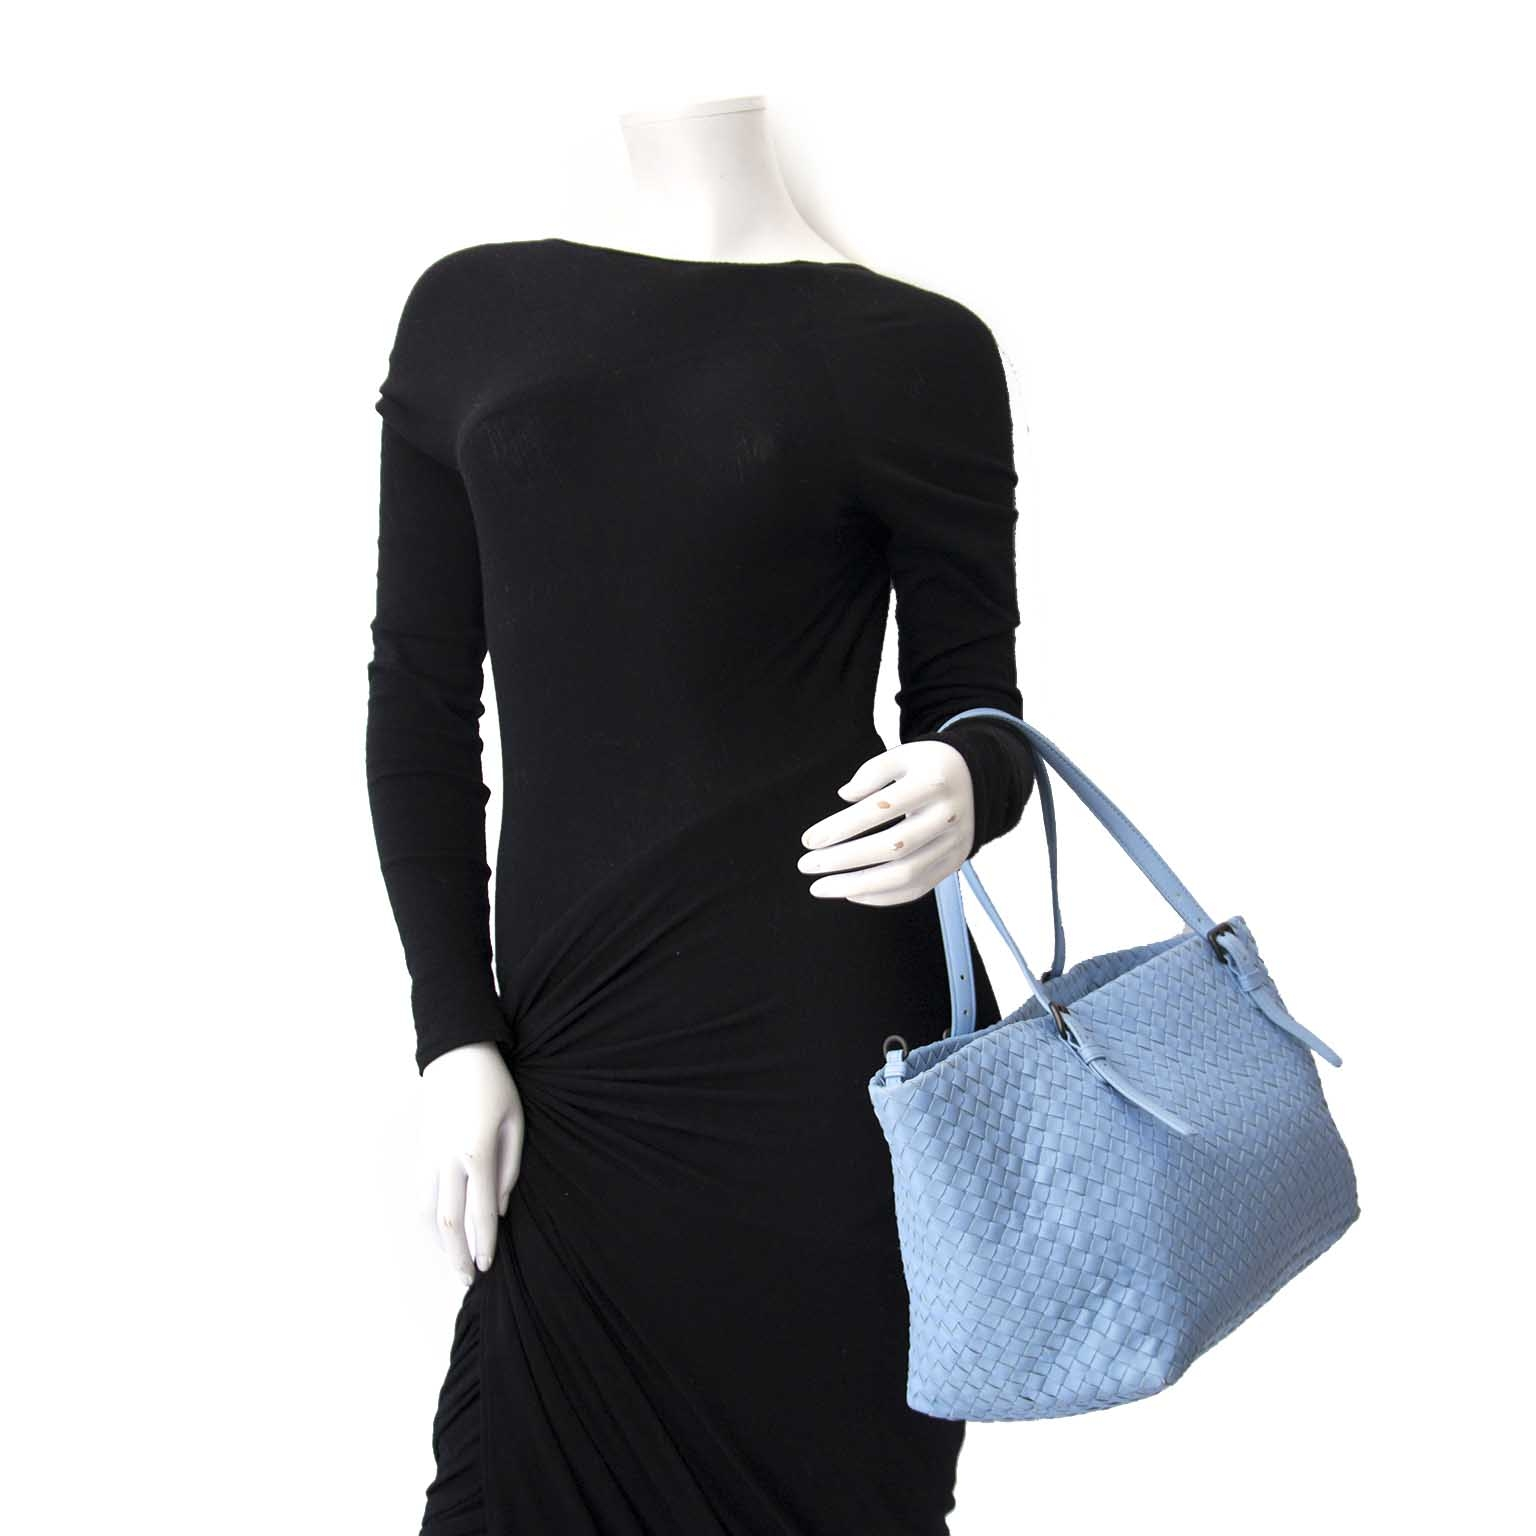 Bottega Veneta Light Blue Shopper  cesta Buy authentic designer Bottega Veneta secondhand bags at Labellov at the best price. Safe and secure shopping. Koop tweedehands authentieke Bottega Veneta tassen bij designer webwinkel labellov.